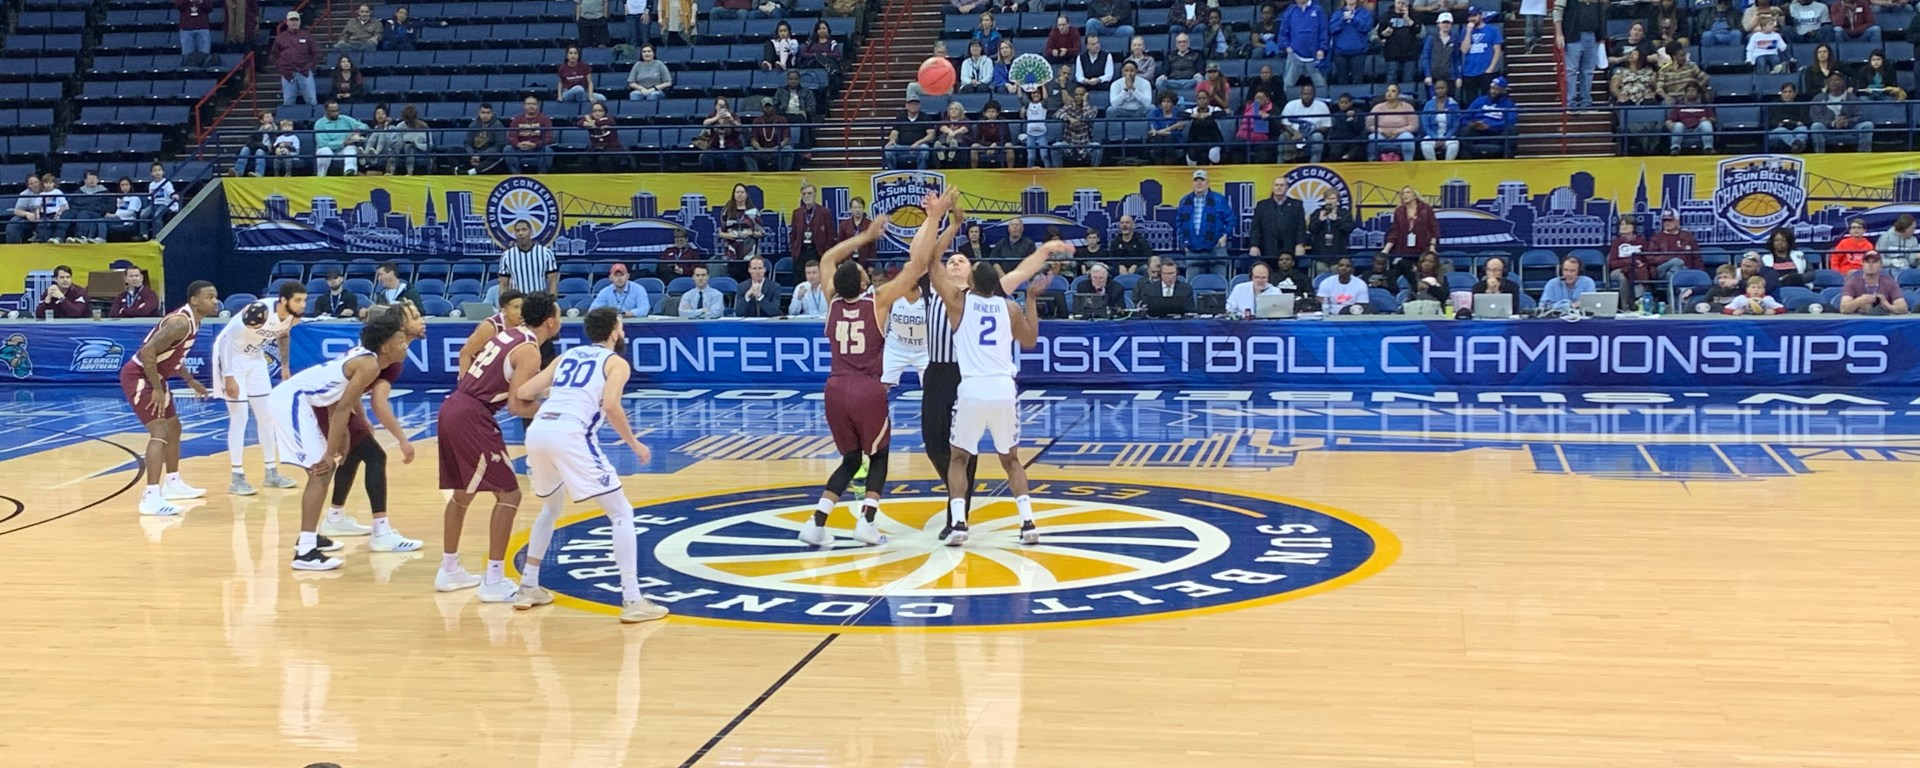 Eric Terry jumps for the opening tip as the Bobcats begin their battle with the Georgia State Panthers in the semifinals of the Sun Belt conference tournament.